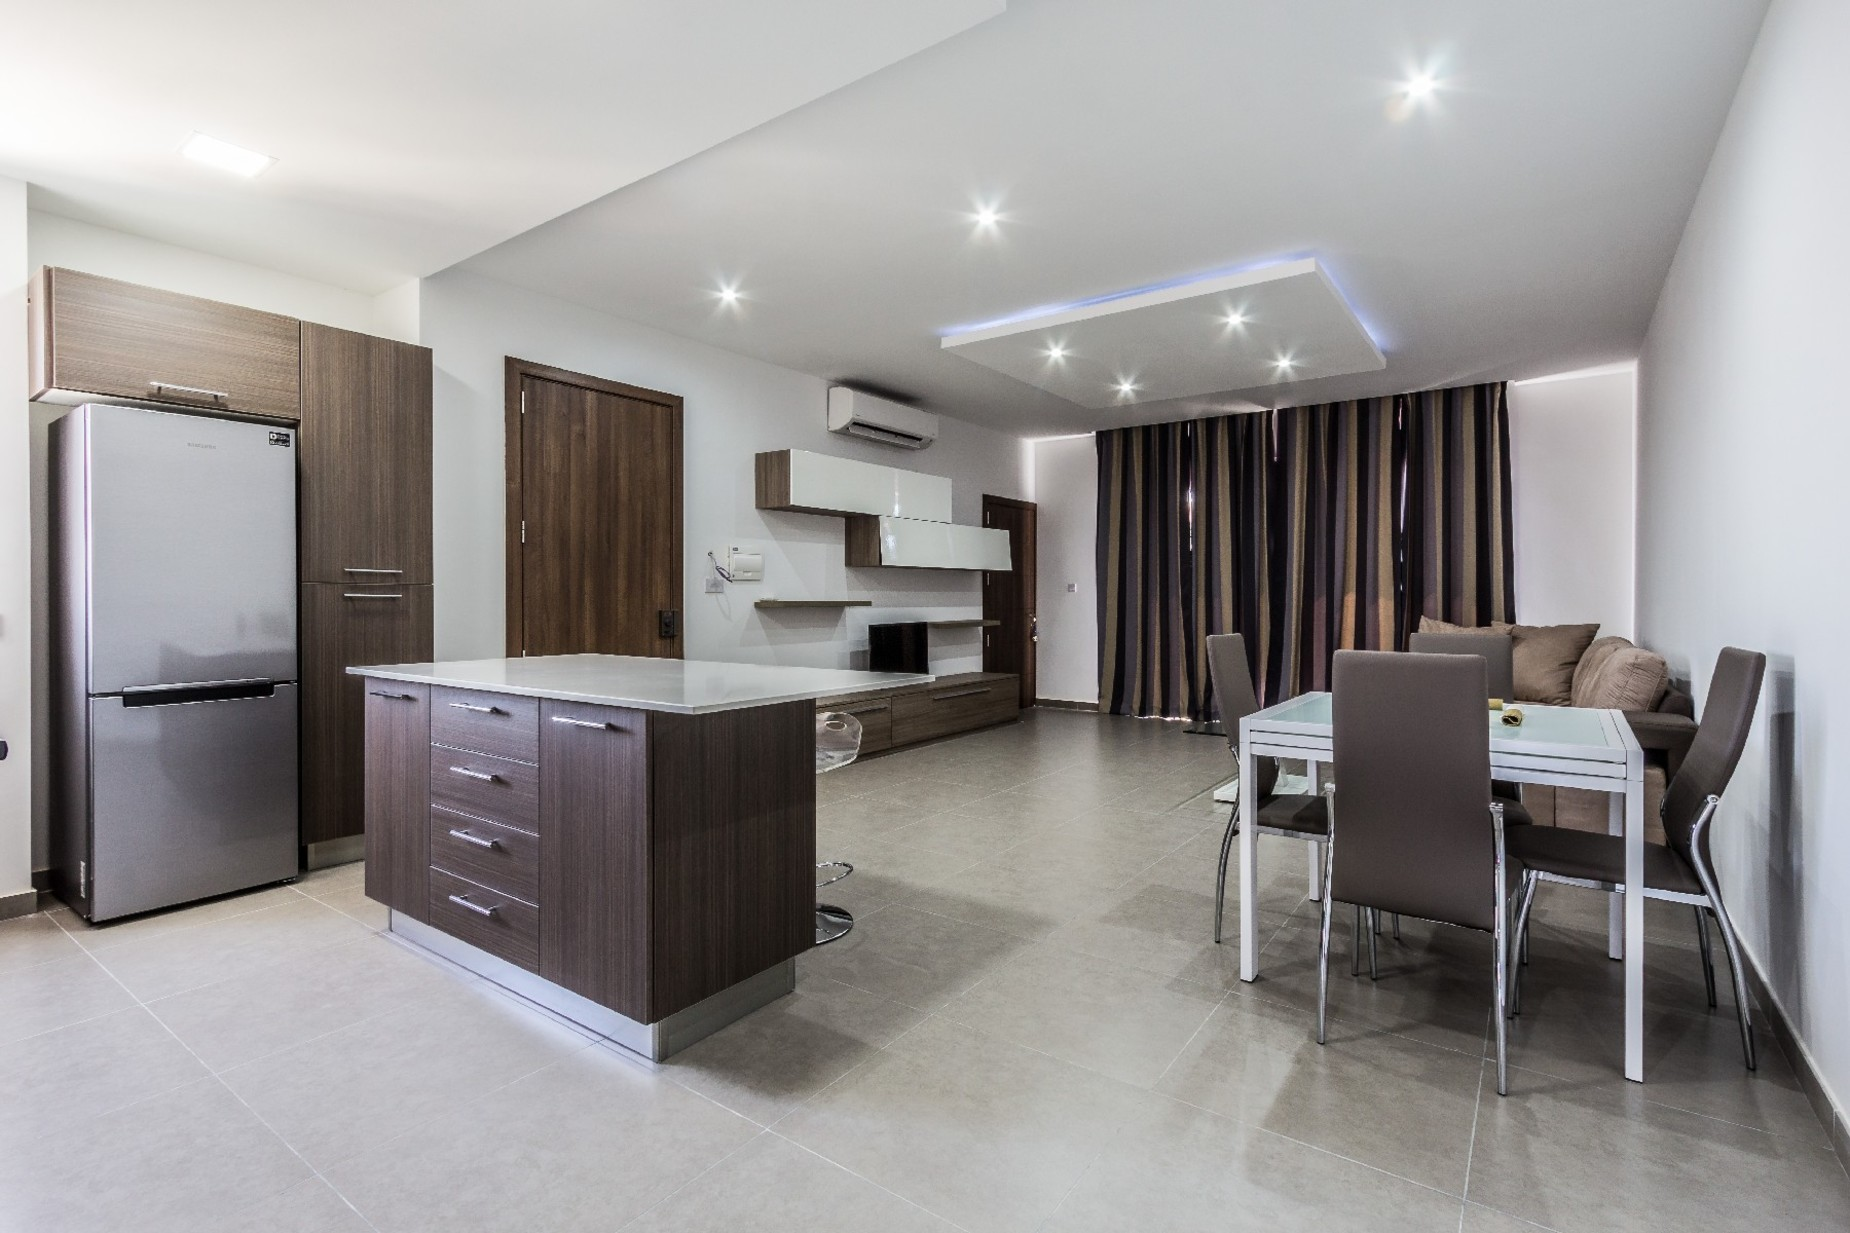 3 bed Penthouse For Rent in Mellieha, Mellieha - thumb 4